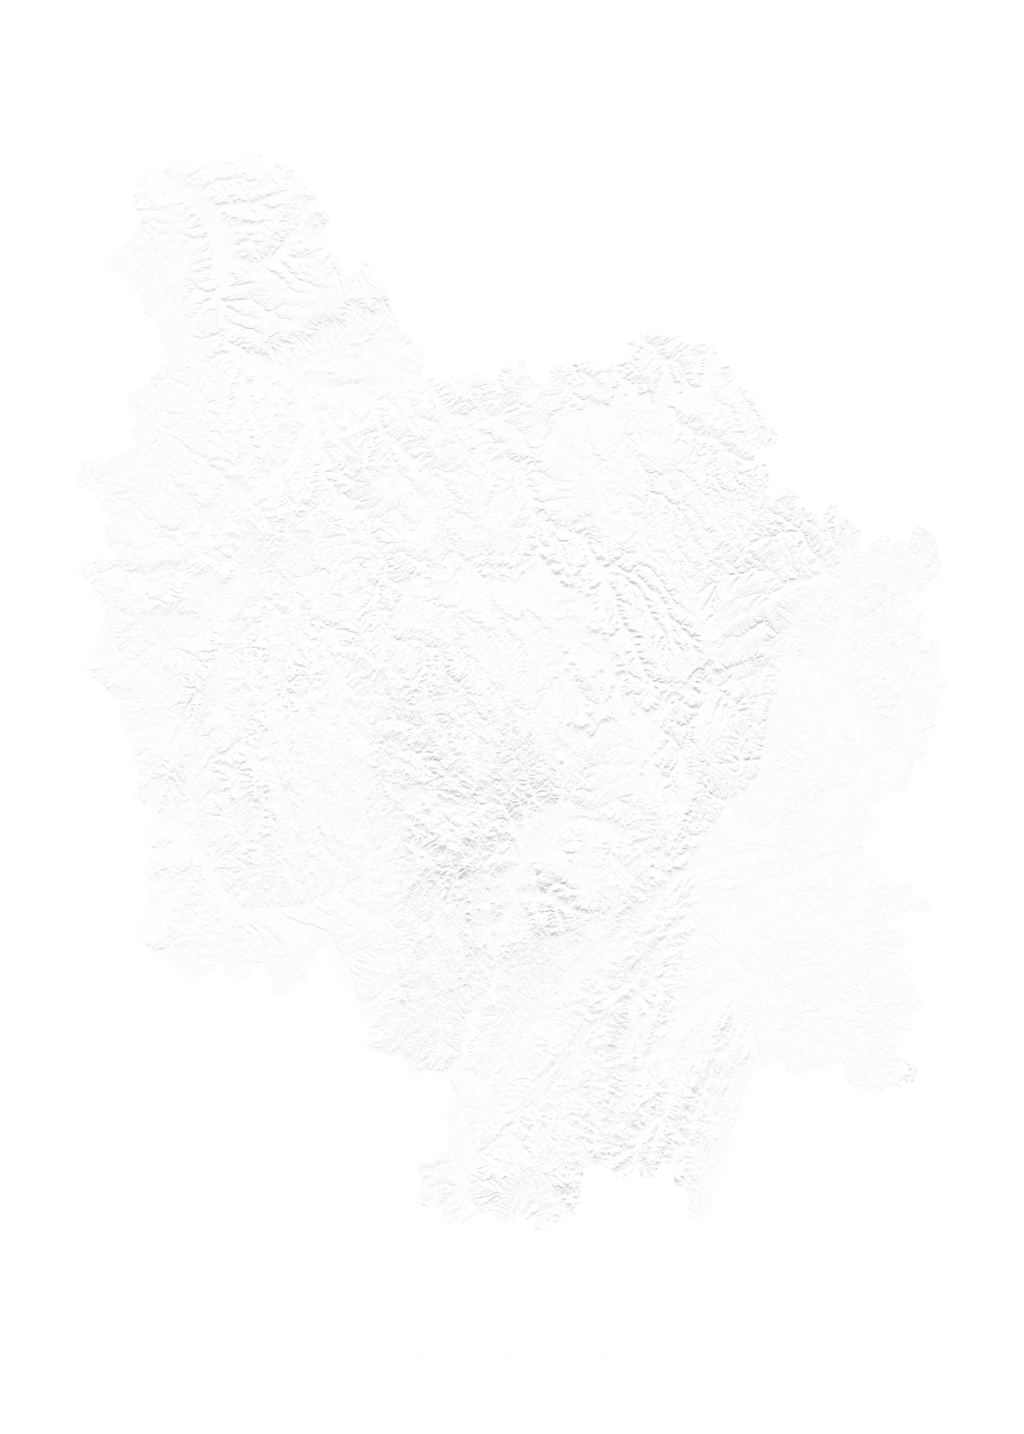 Bourgogne wall map